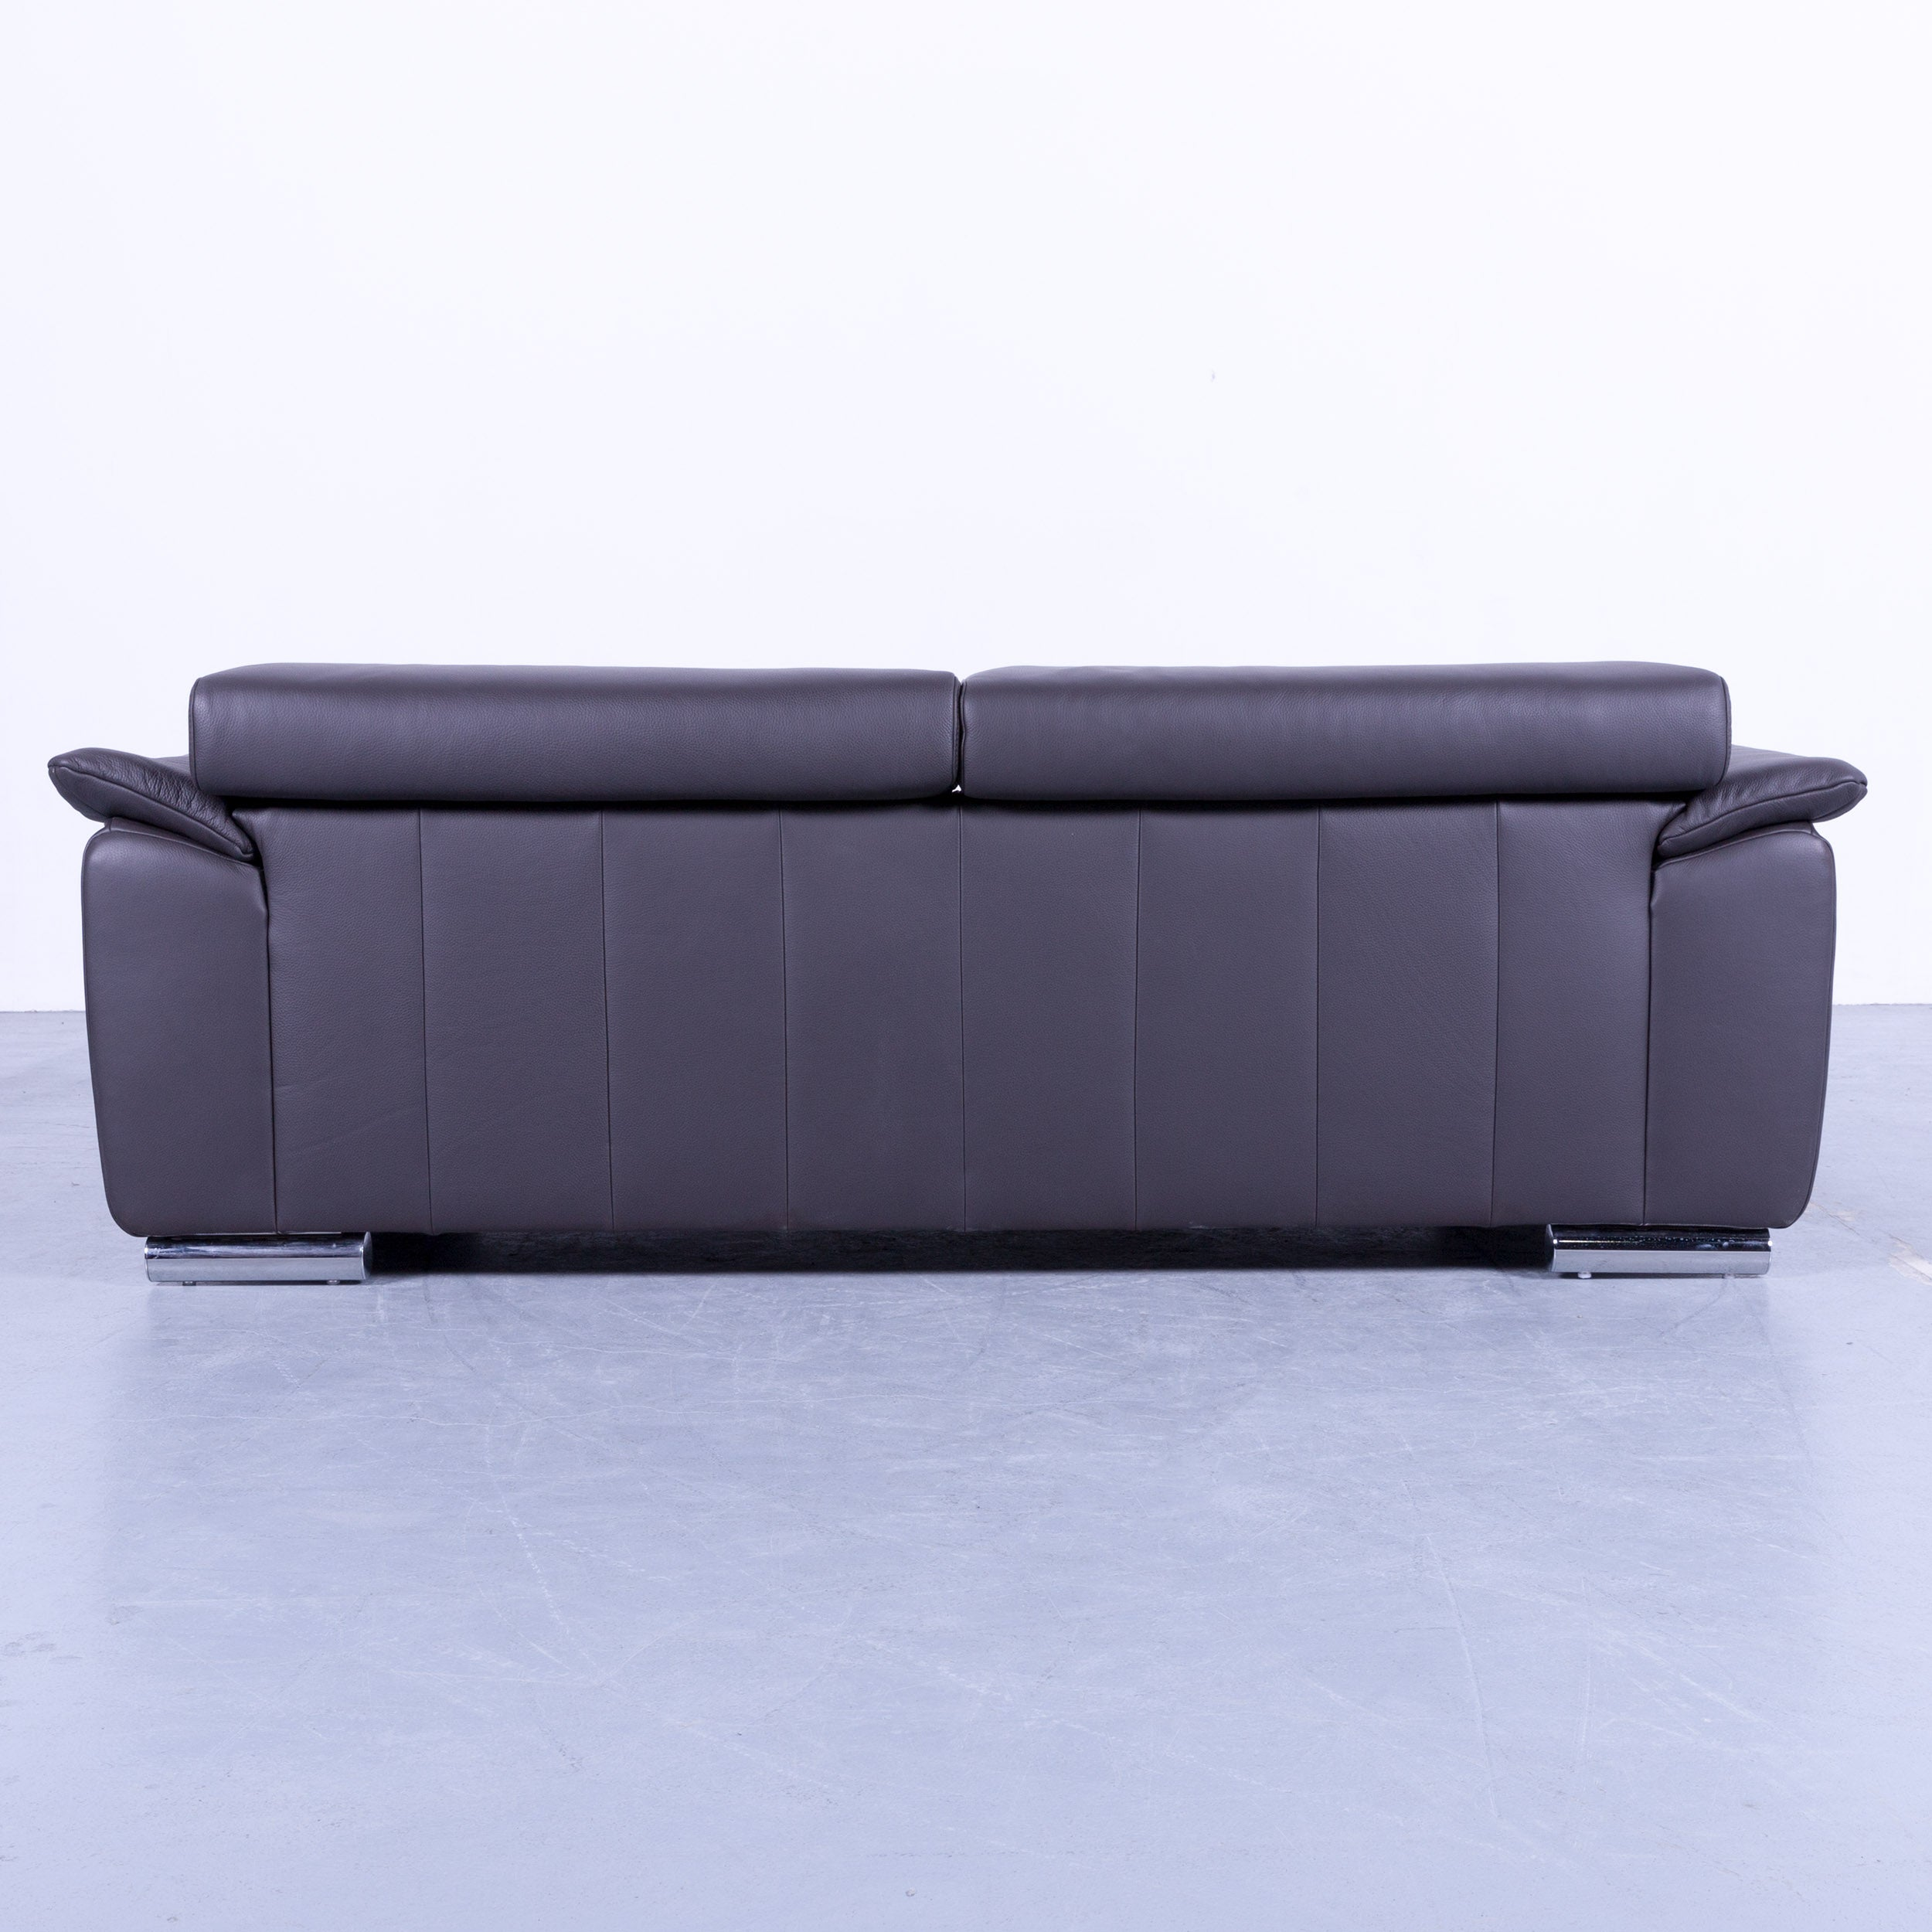 Sessel Nugget Ewald Schillig Schillig Sofas Gallery Of Image With Schillig Sofas Simple Willi